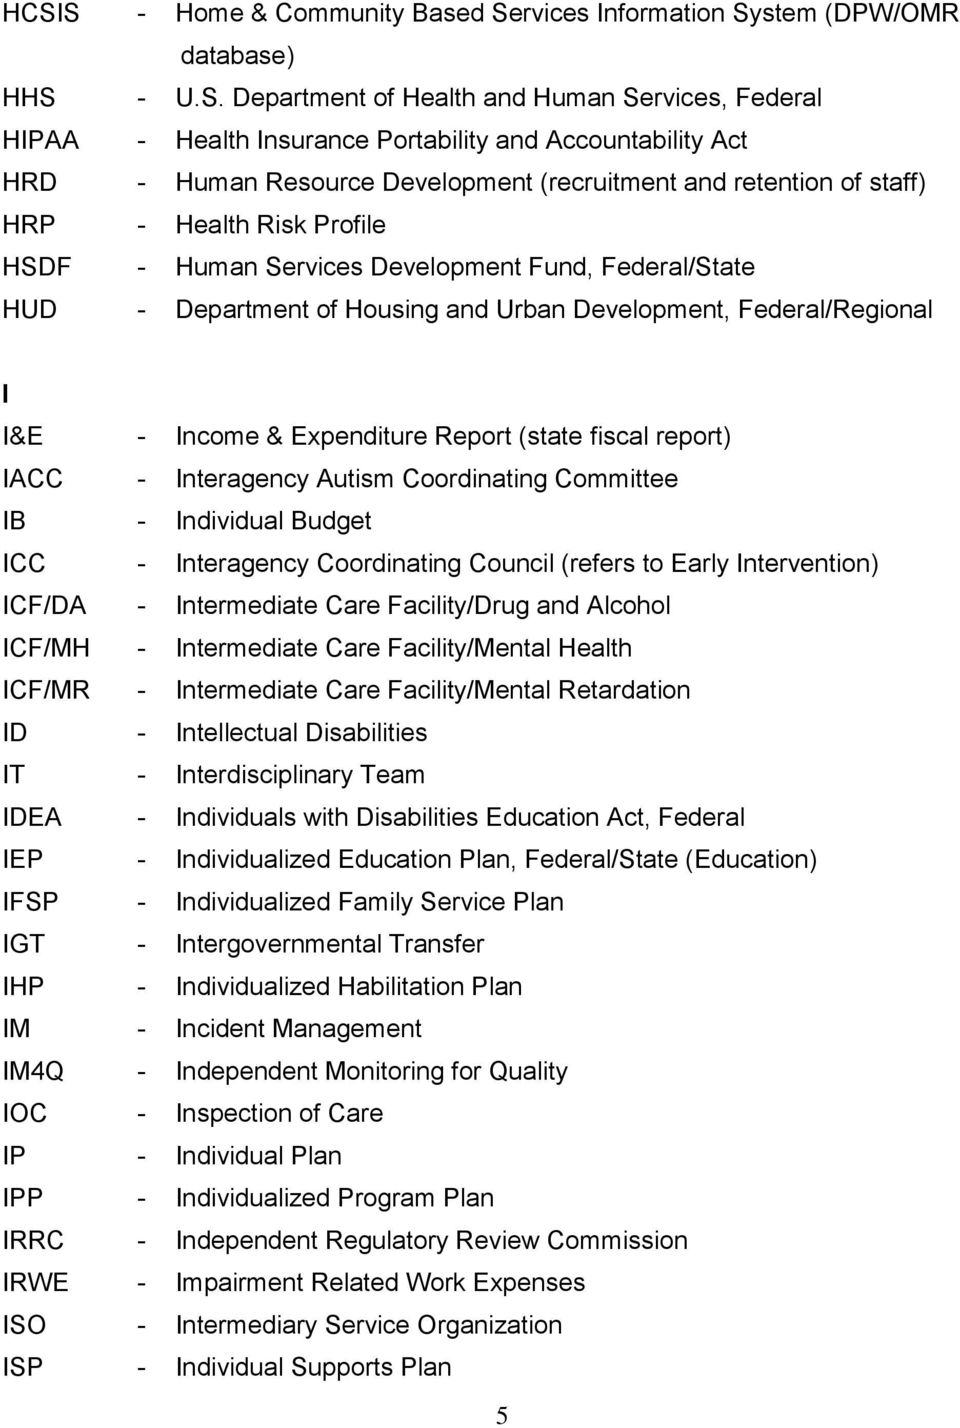 Development, Federal/Regional I I&E - Income & Expenditure Report (state fiscal report) IACC - Interagency Autism Coordinating Committee IB - Individual Budget ICC - Interagency Coordinating Council